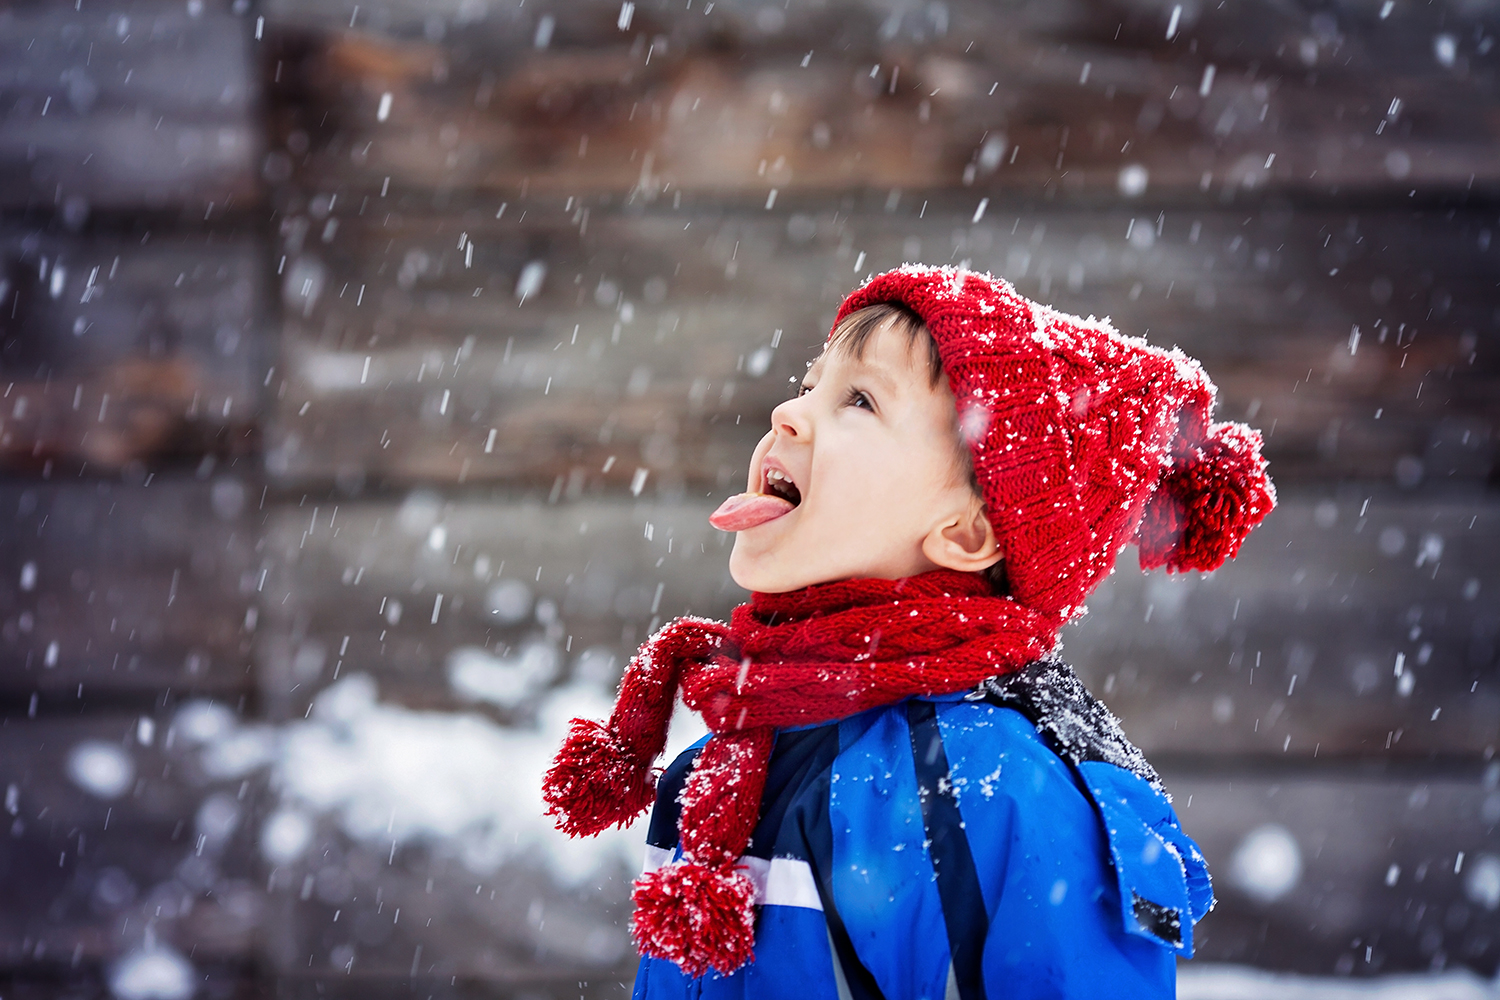 Child Catching Snow and Wearing a Red Hat